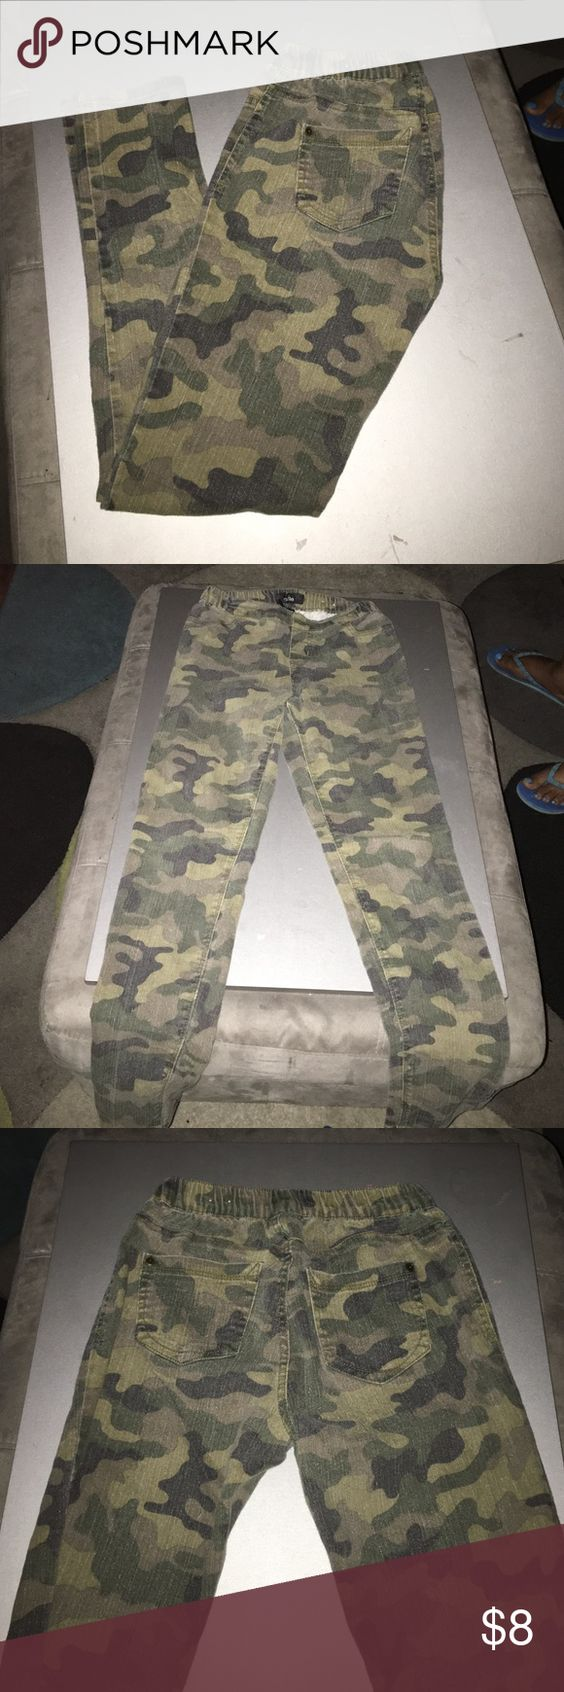 Camouflage skinnys Cute Camouflage skinnys to be dressed up or down South Pole Pants Skinny